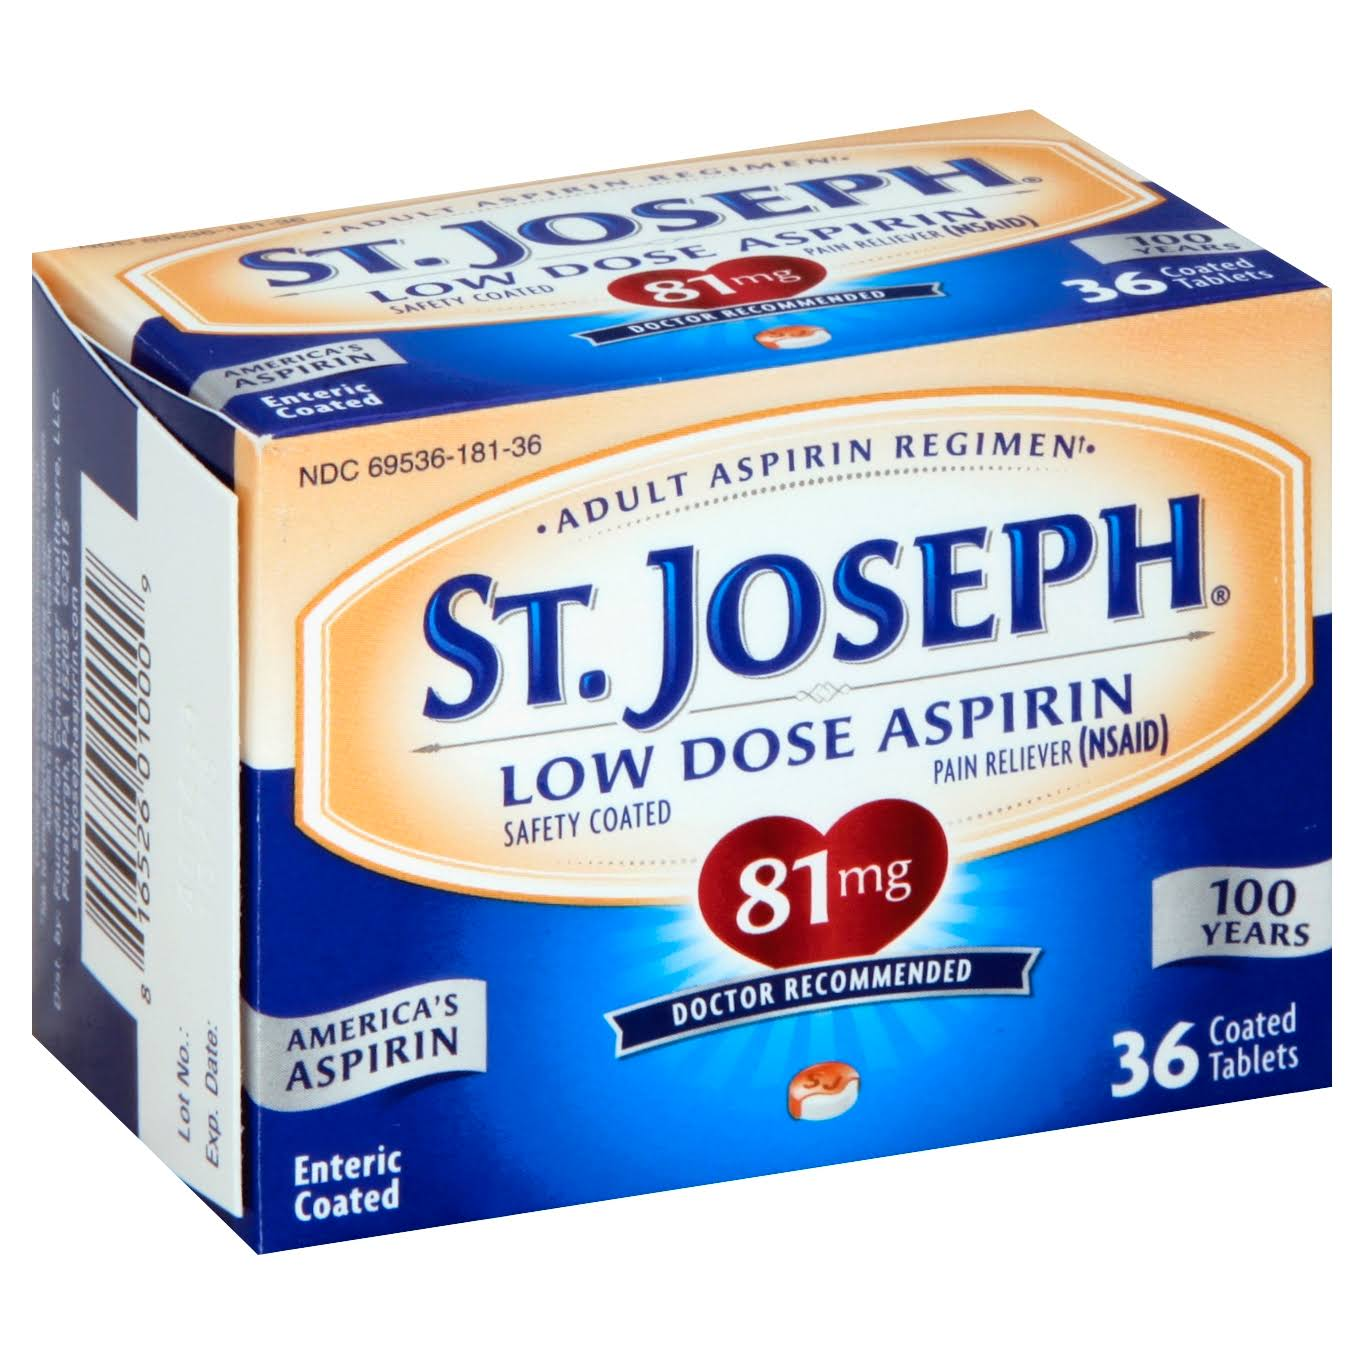 St. Joseph Aspirin Low Dose Pain Reliever - 36 Tablets